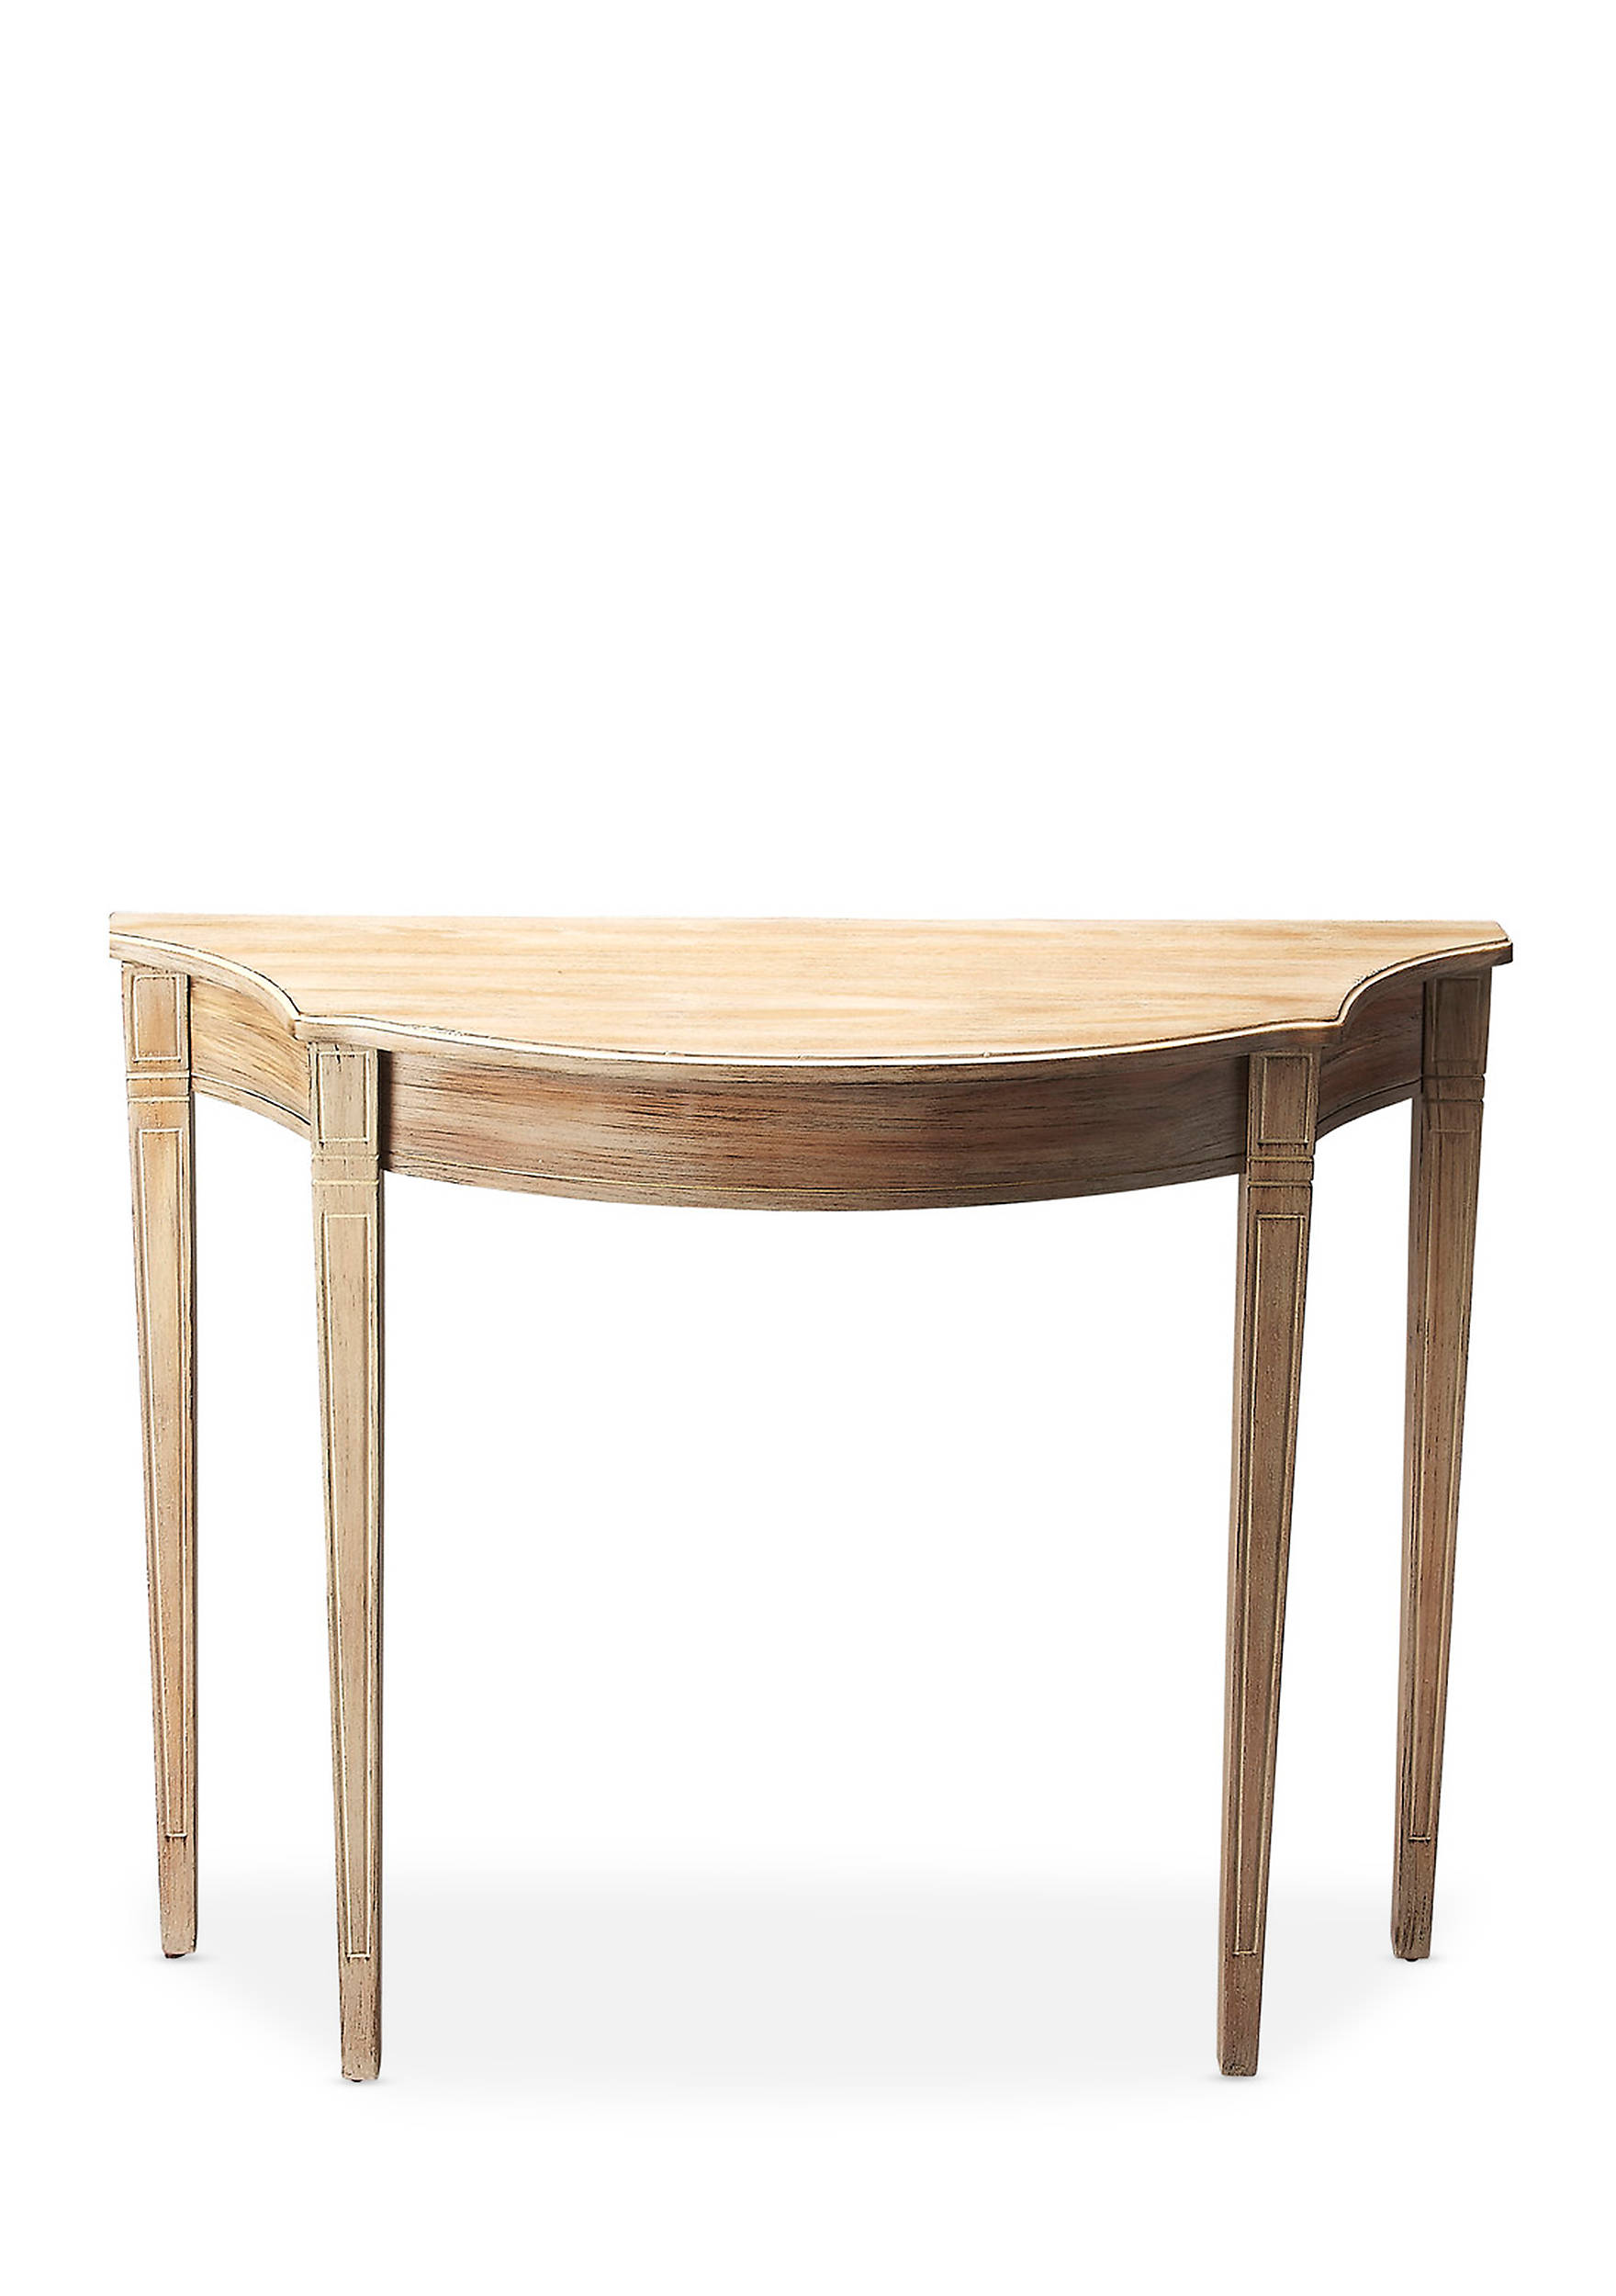 Butler specialty company chester driftwood console table belk images chester driftwood console table geotapseo Images